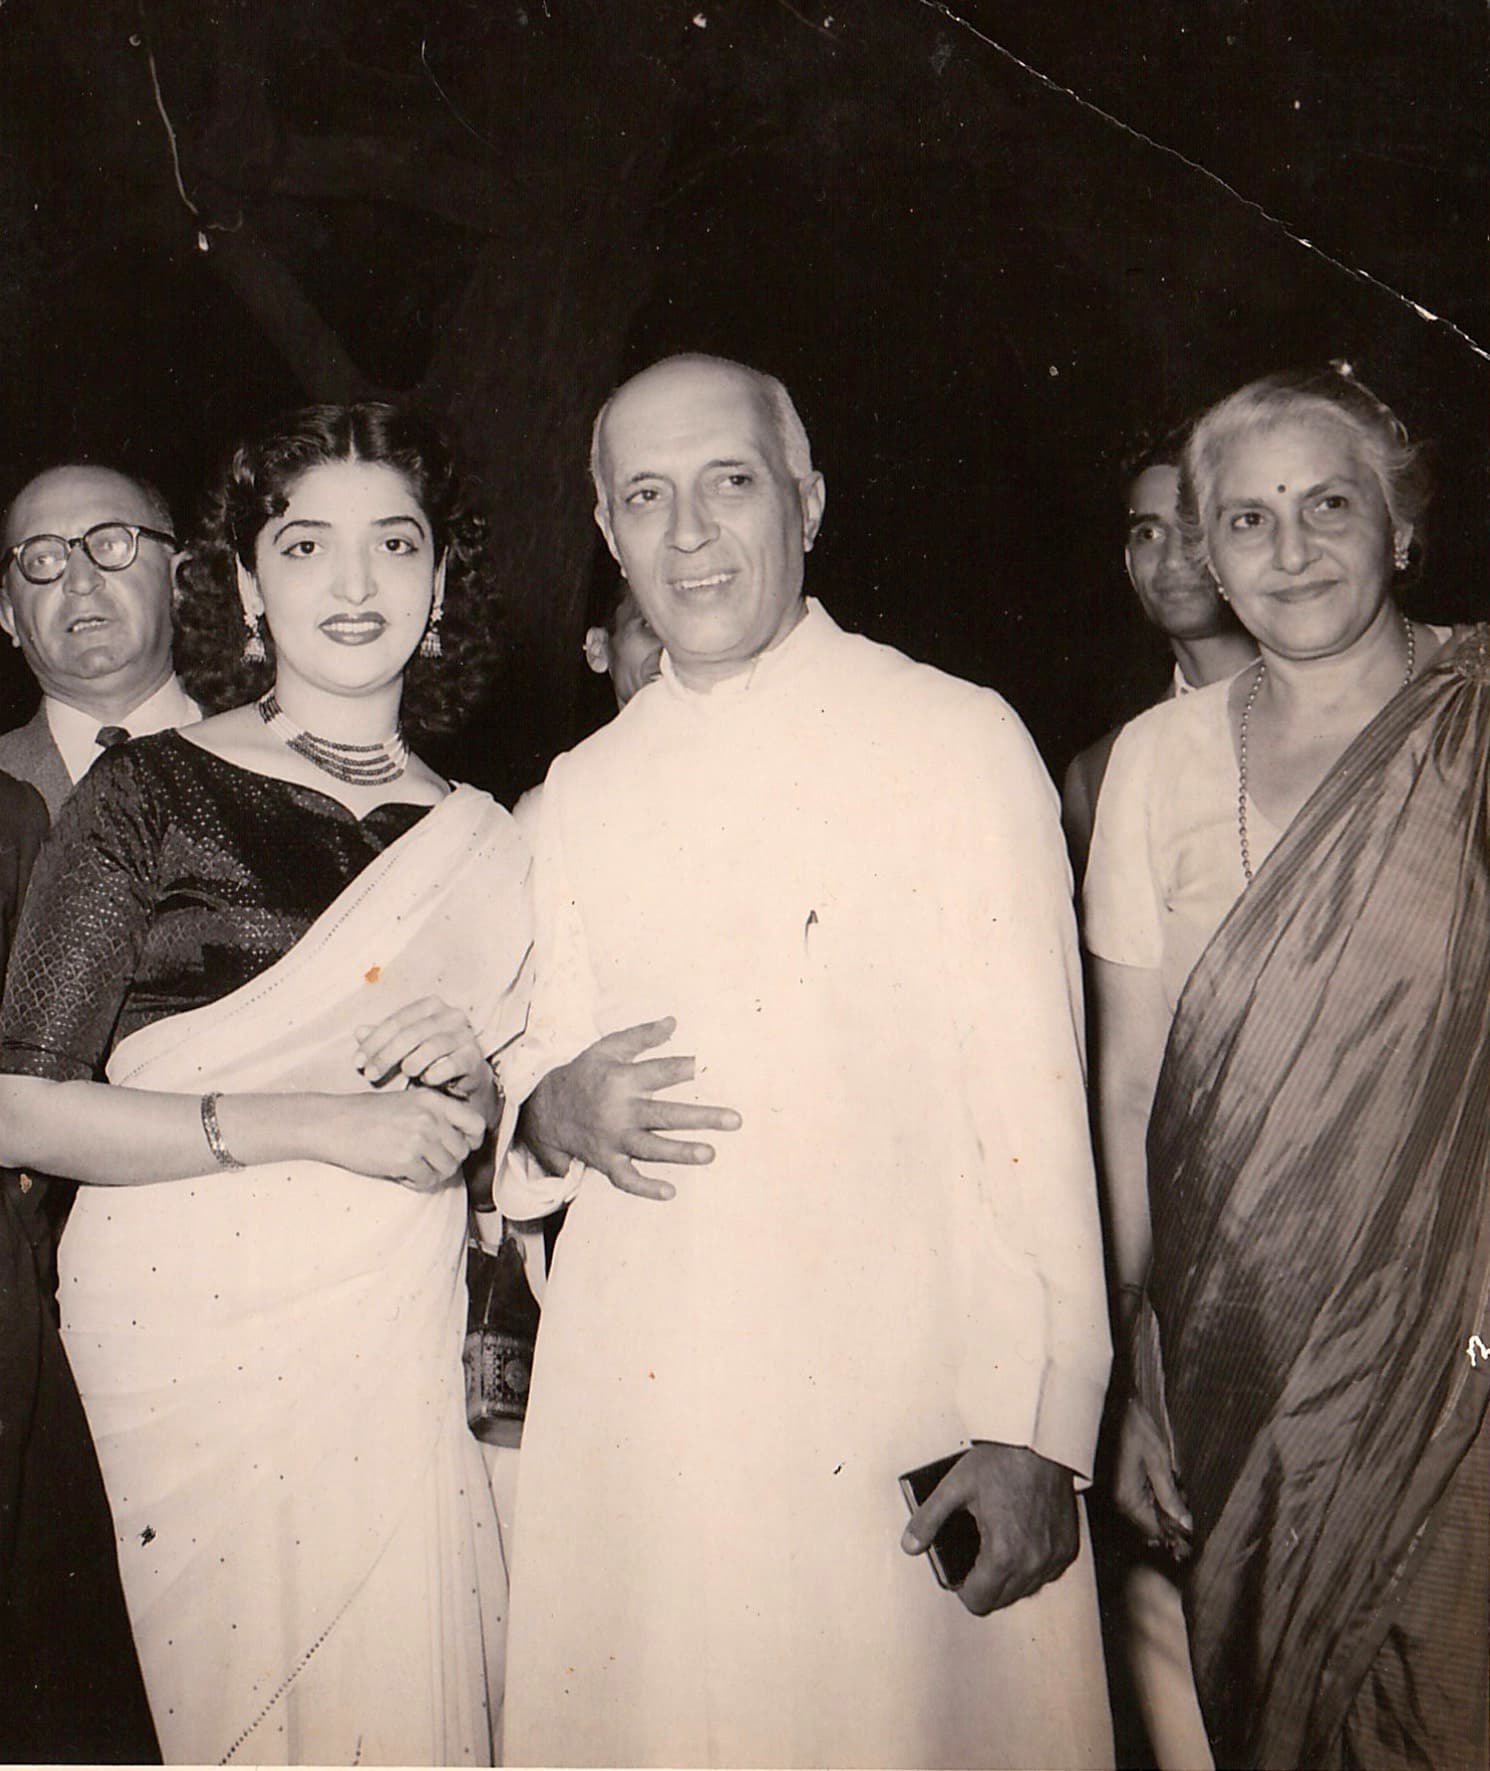 With Prime Minister Nehru